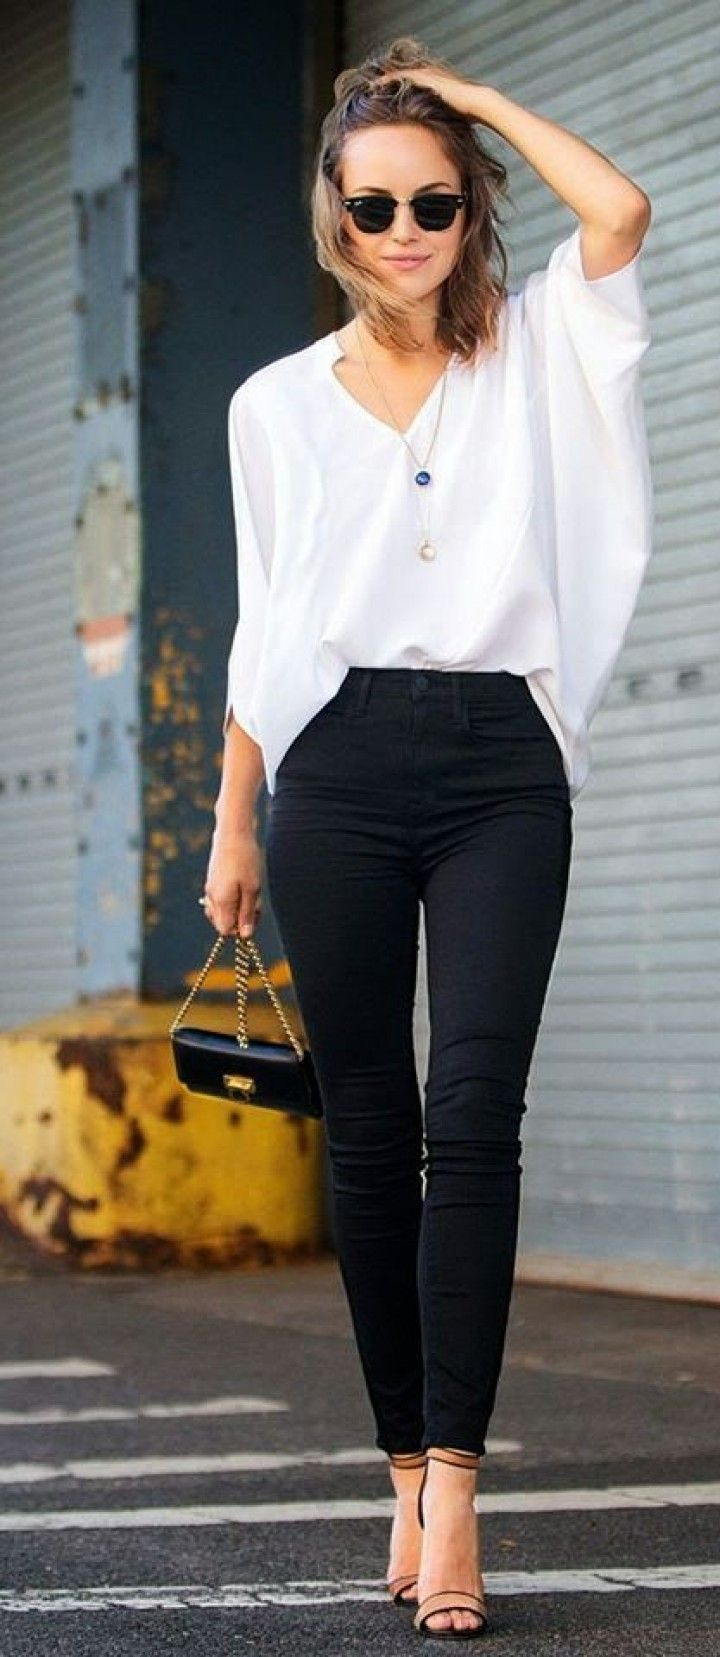 20 looks to update your summer office wardrobe in 2018 for Black shirt business casual